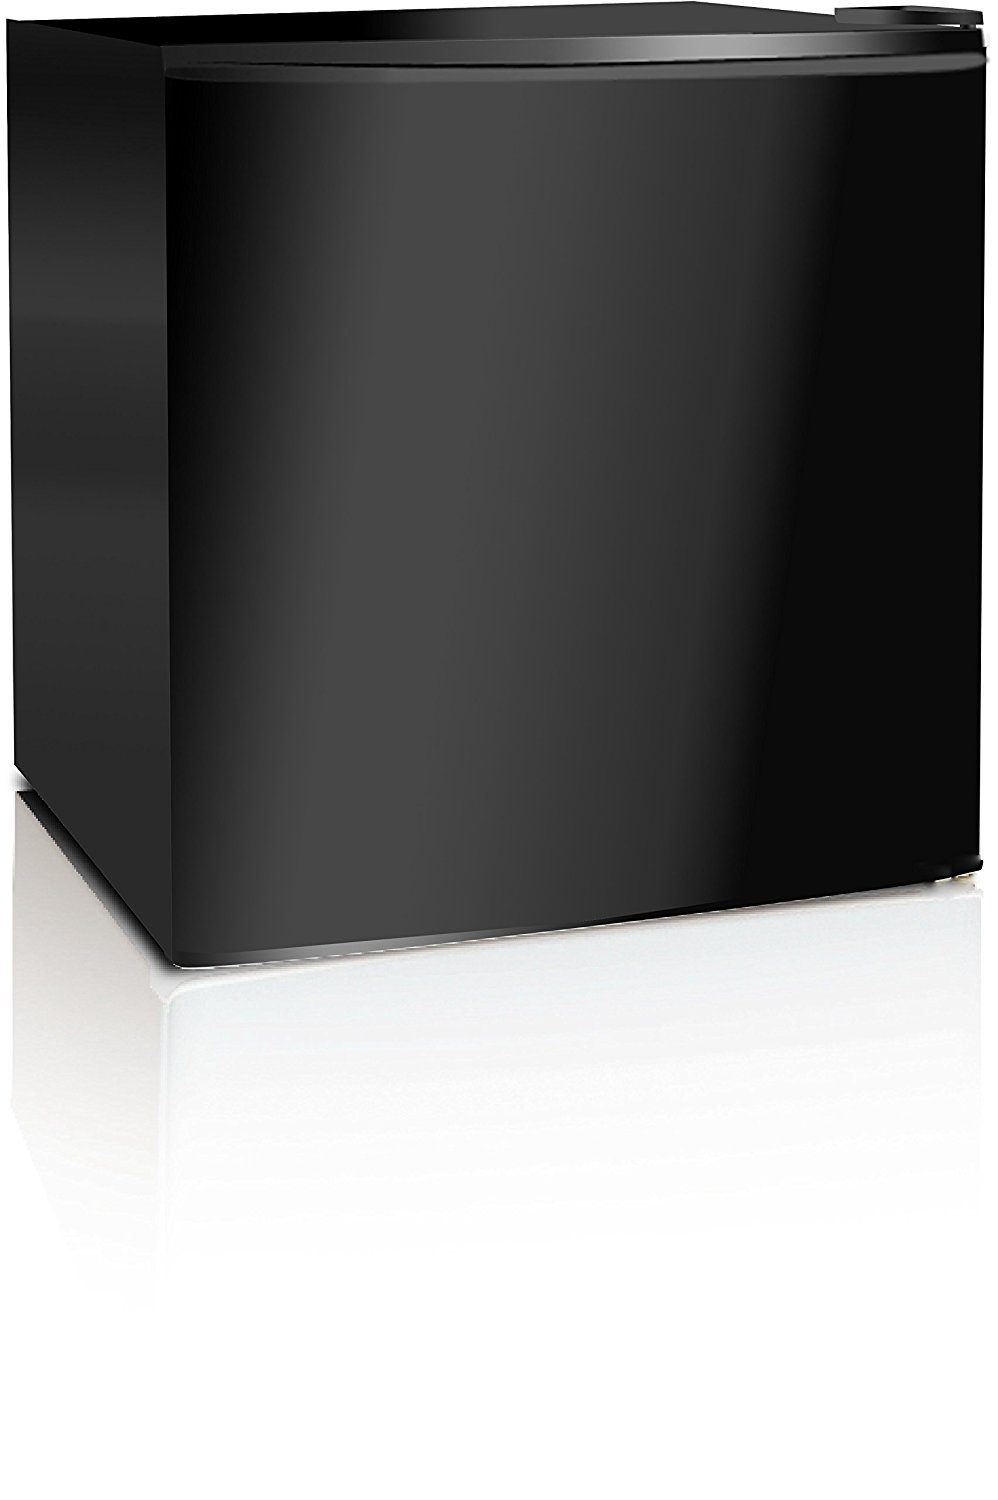 Midea WHS-65LB1 Compact Single Reversible Door Refrigerator, 1.6 Cubic Feet (0.045 Cubic Meter), Black